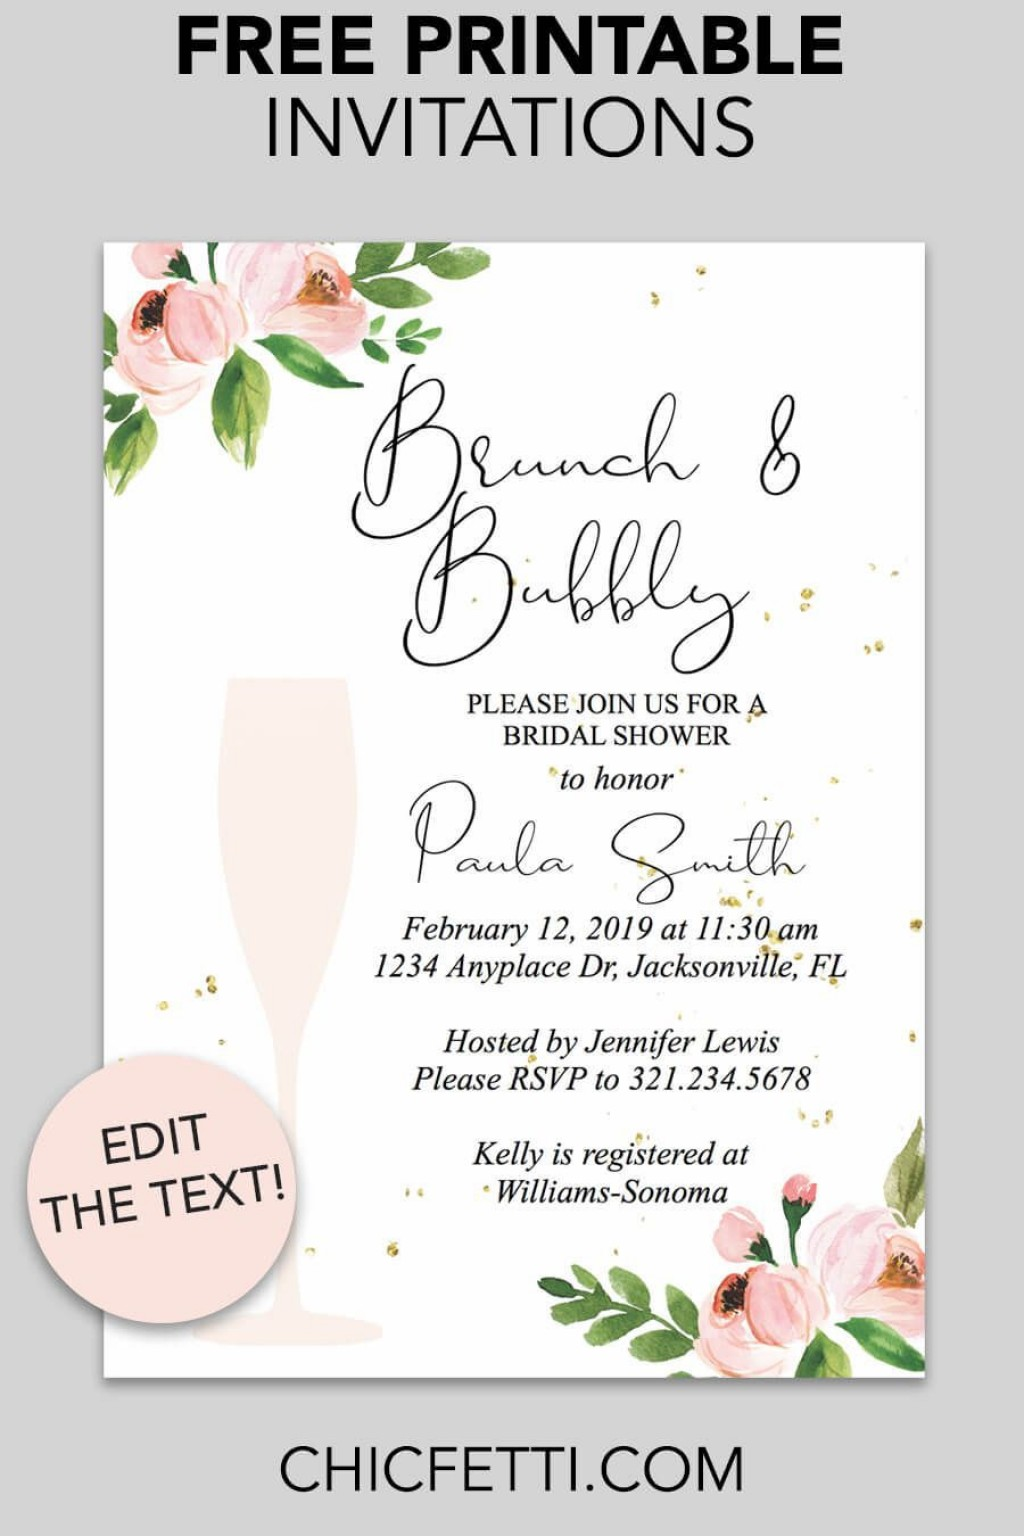 001 Top Free Bridal Shower Invite Template High Definition  Templates Invitation To Print Online Wedding For Microsoft WordLarge